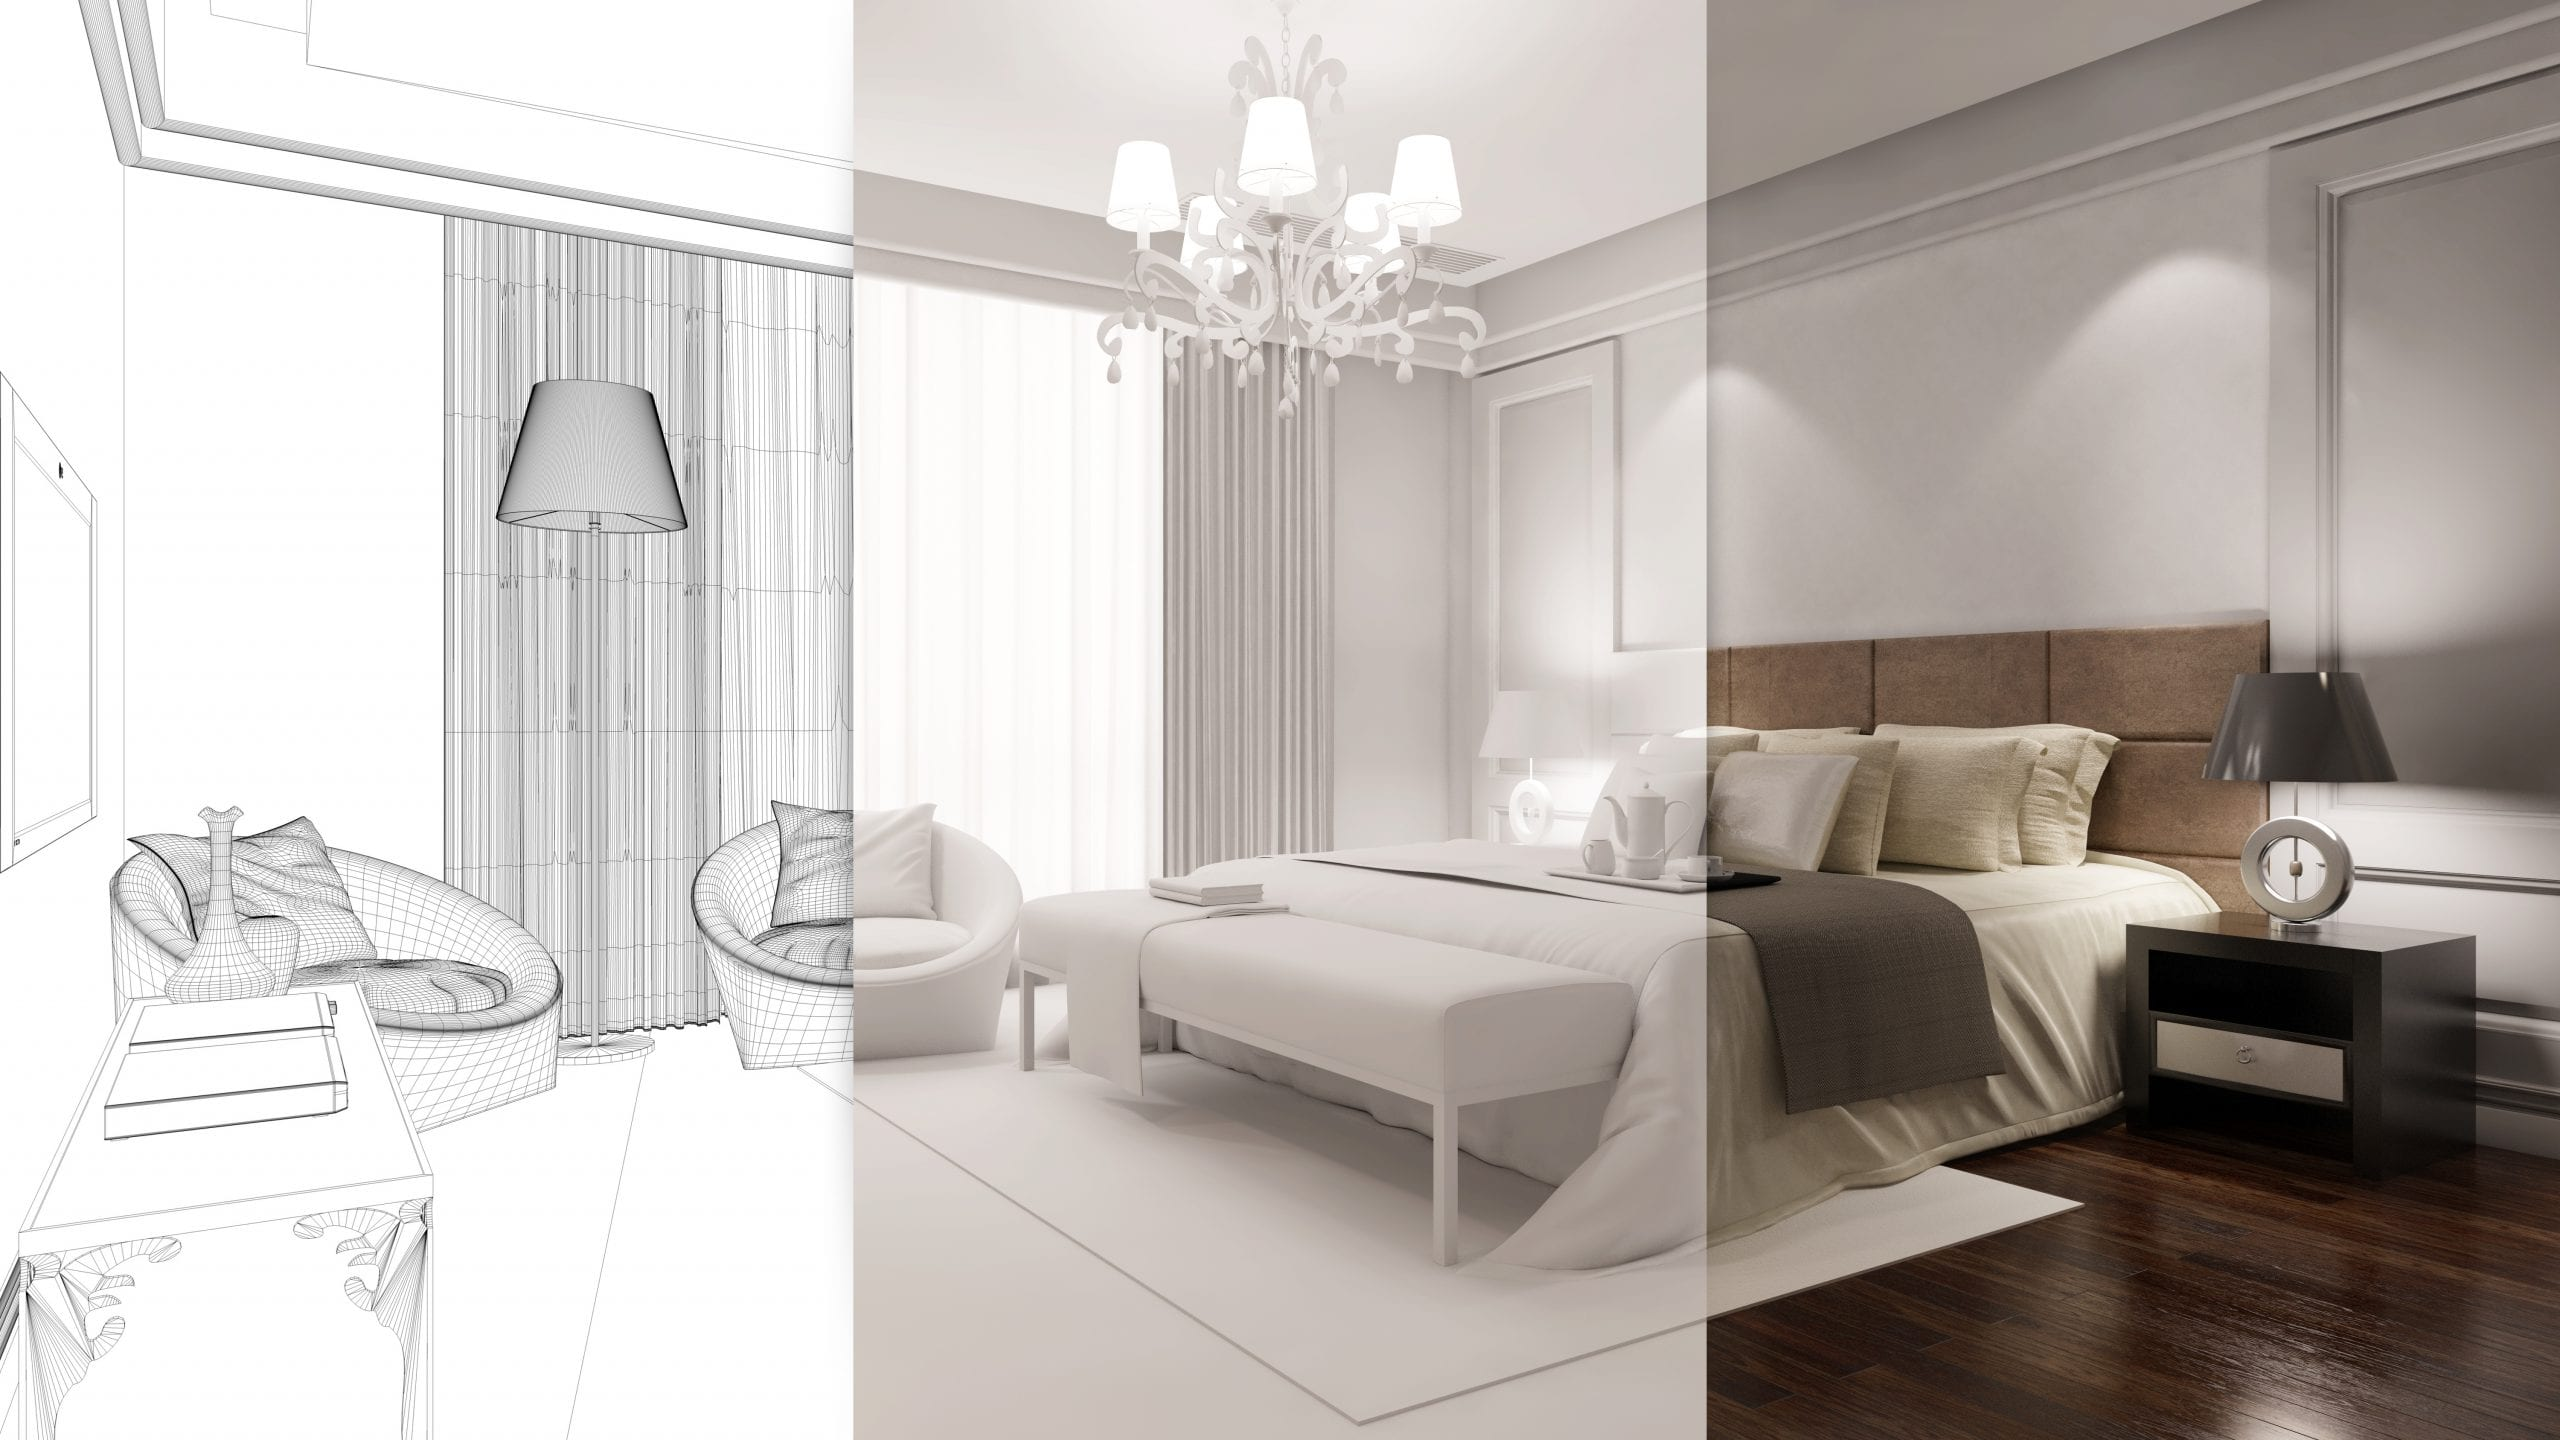 CAD and Design rendering of a hotel room.